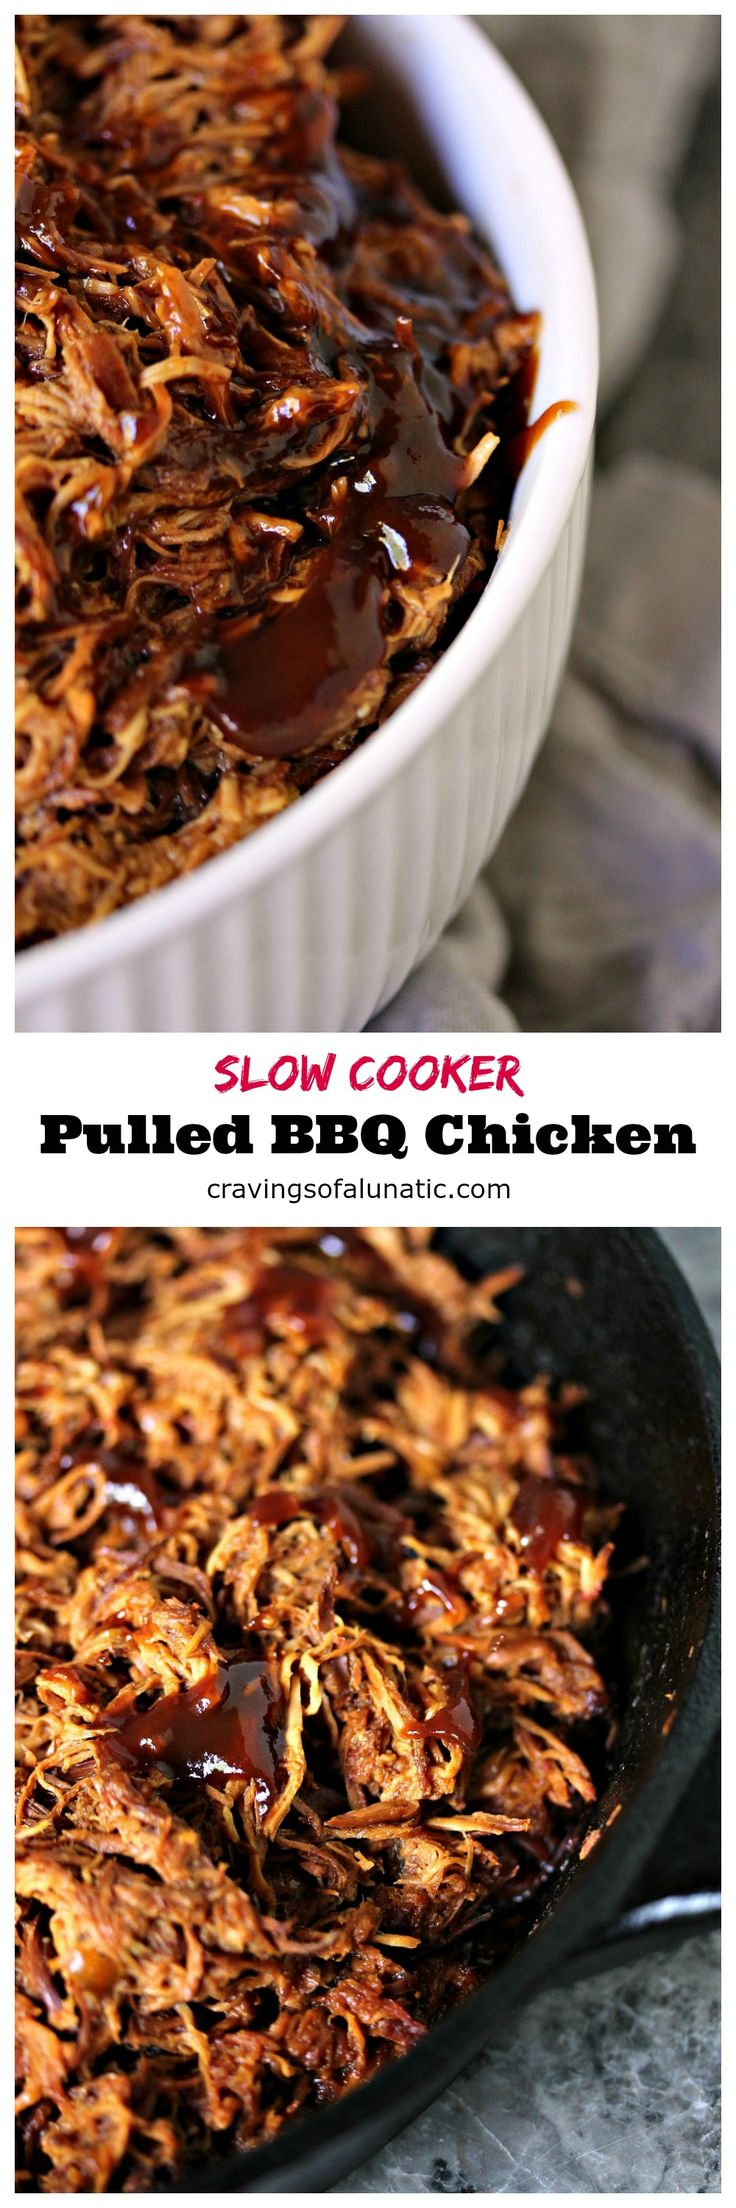 "Slow Cooker Pulled BBQ Chicken from cravingsofalunatic.com- This easy recipe for pulled BBQ chicken is made in the slow cooker with just a few ingredients. It's a great ""set it and forget it"" recipe. Eat it plain, or pile it high on a slider bun!"